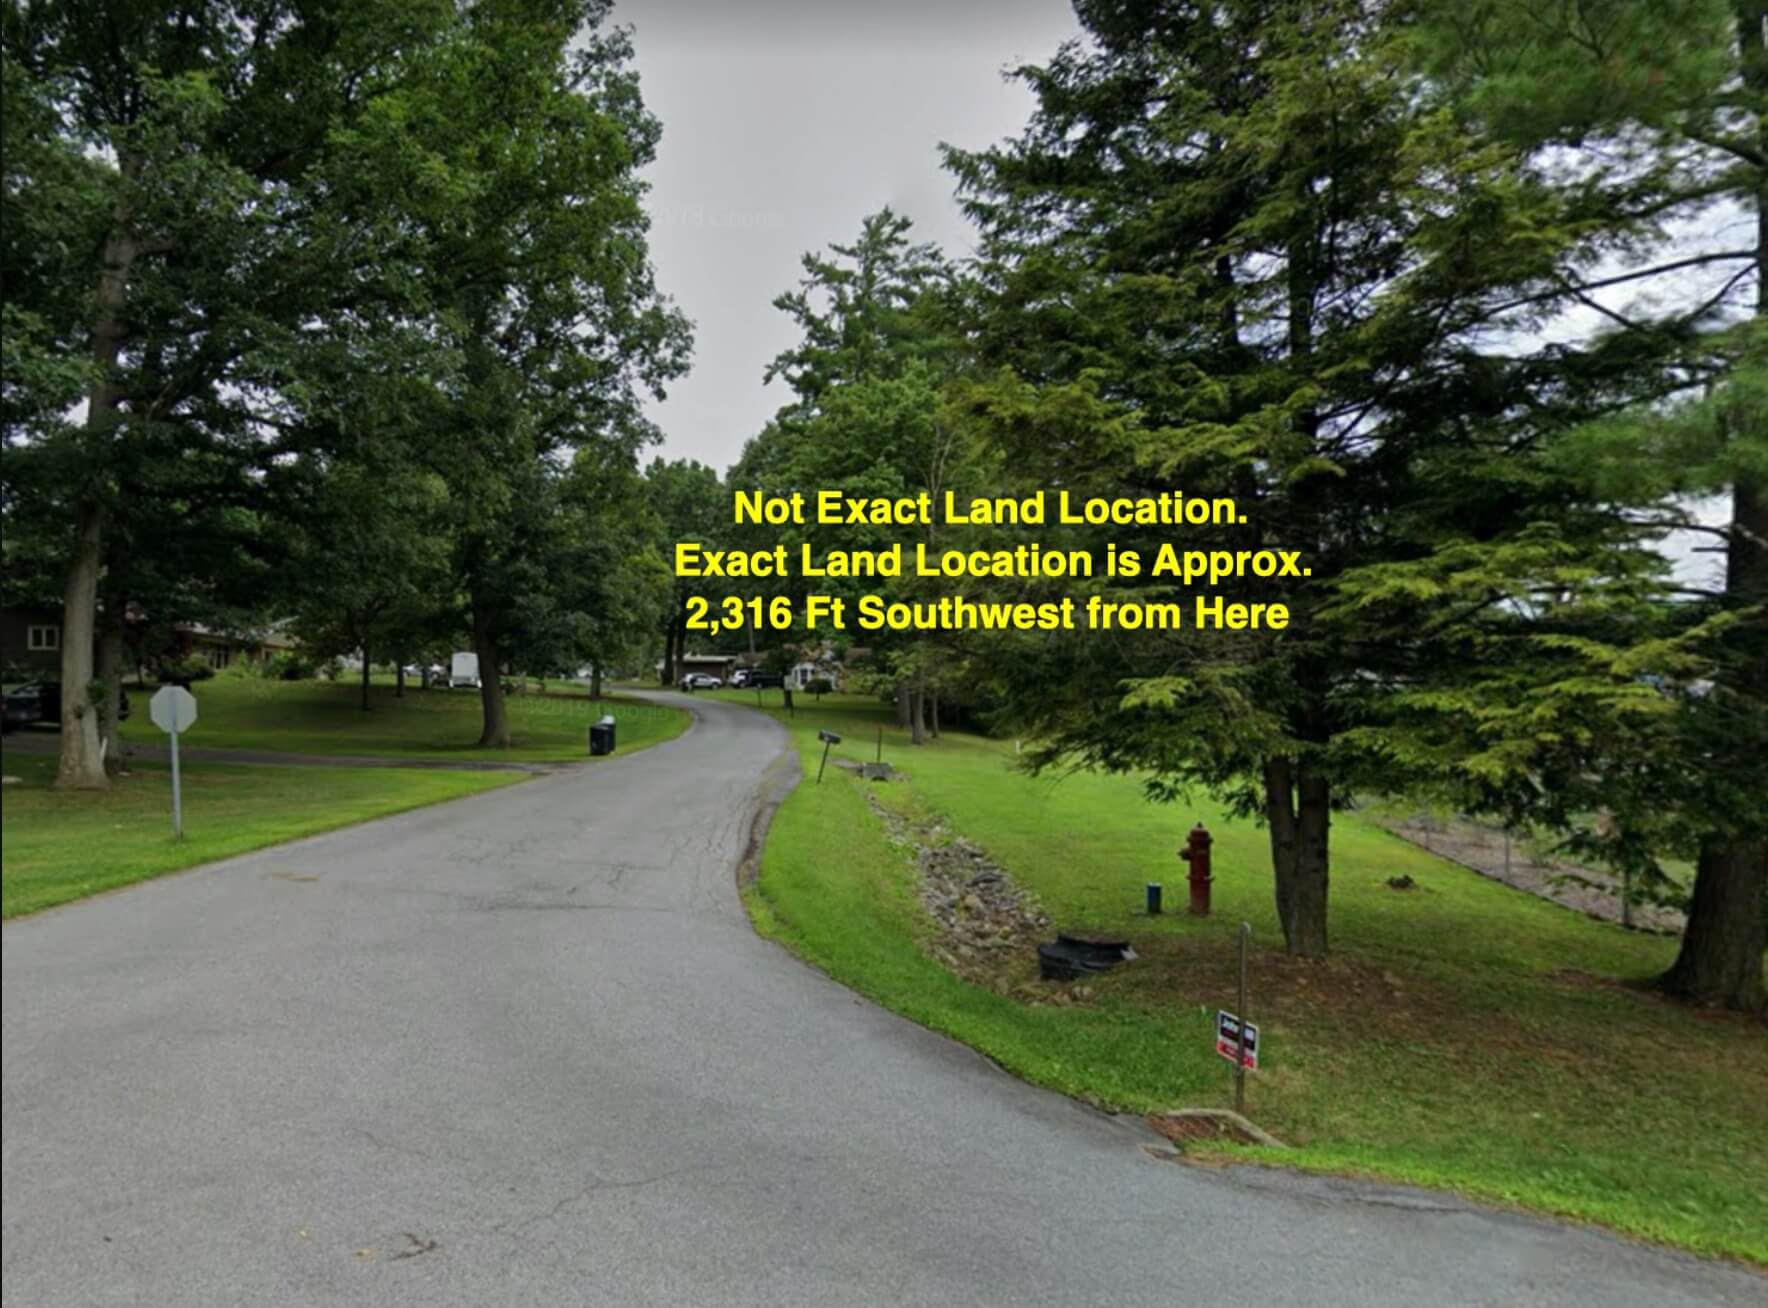 Cheap Land in Altoona, PA- Population 40K+ Altoona, PA Land Lot